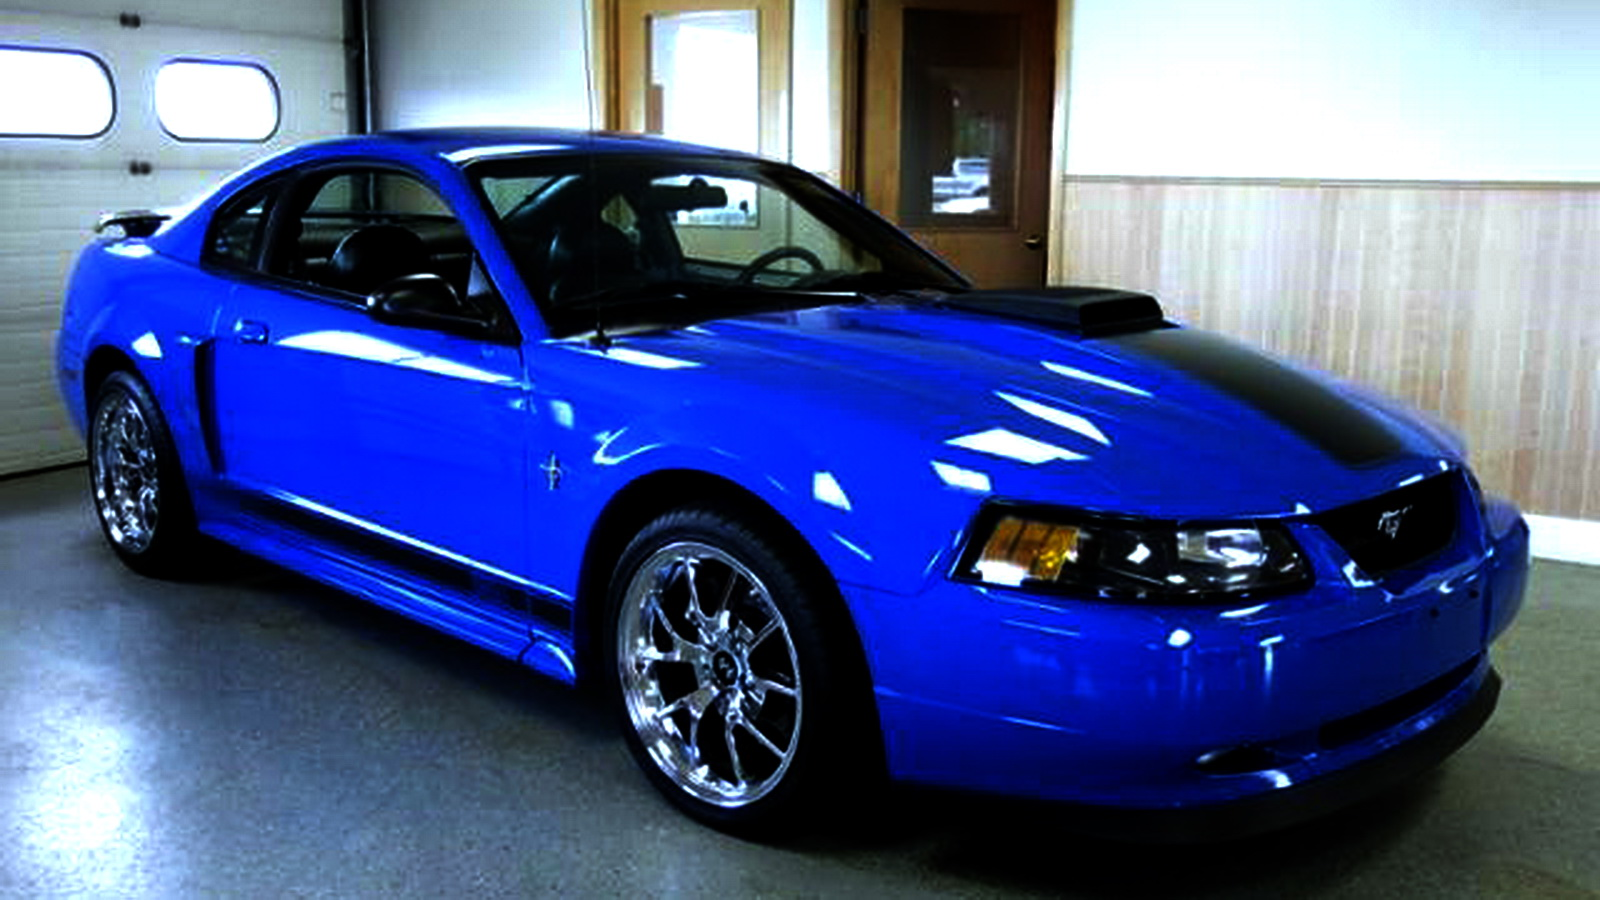 2004 Mustang Mach 1 Specs Image Gallery  HCPR